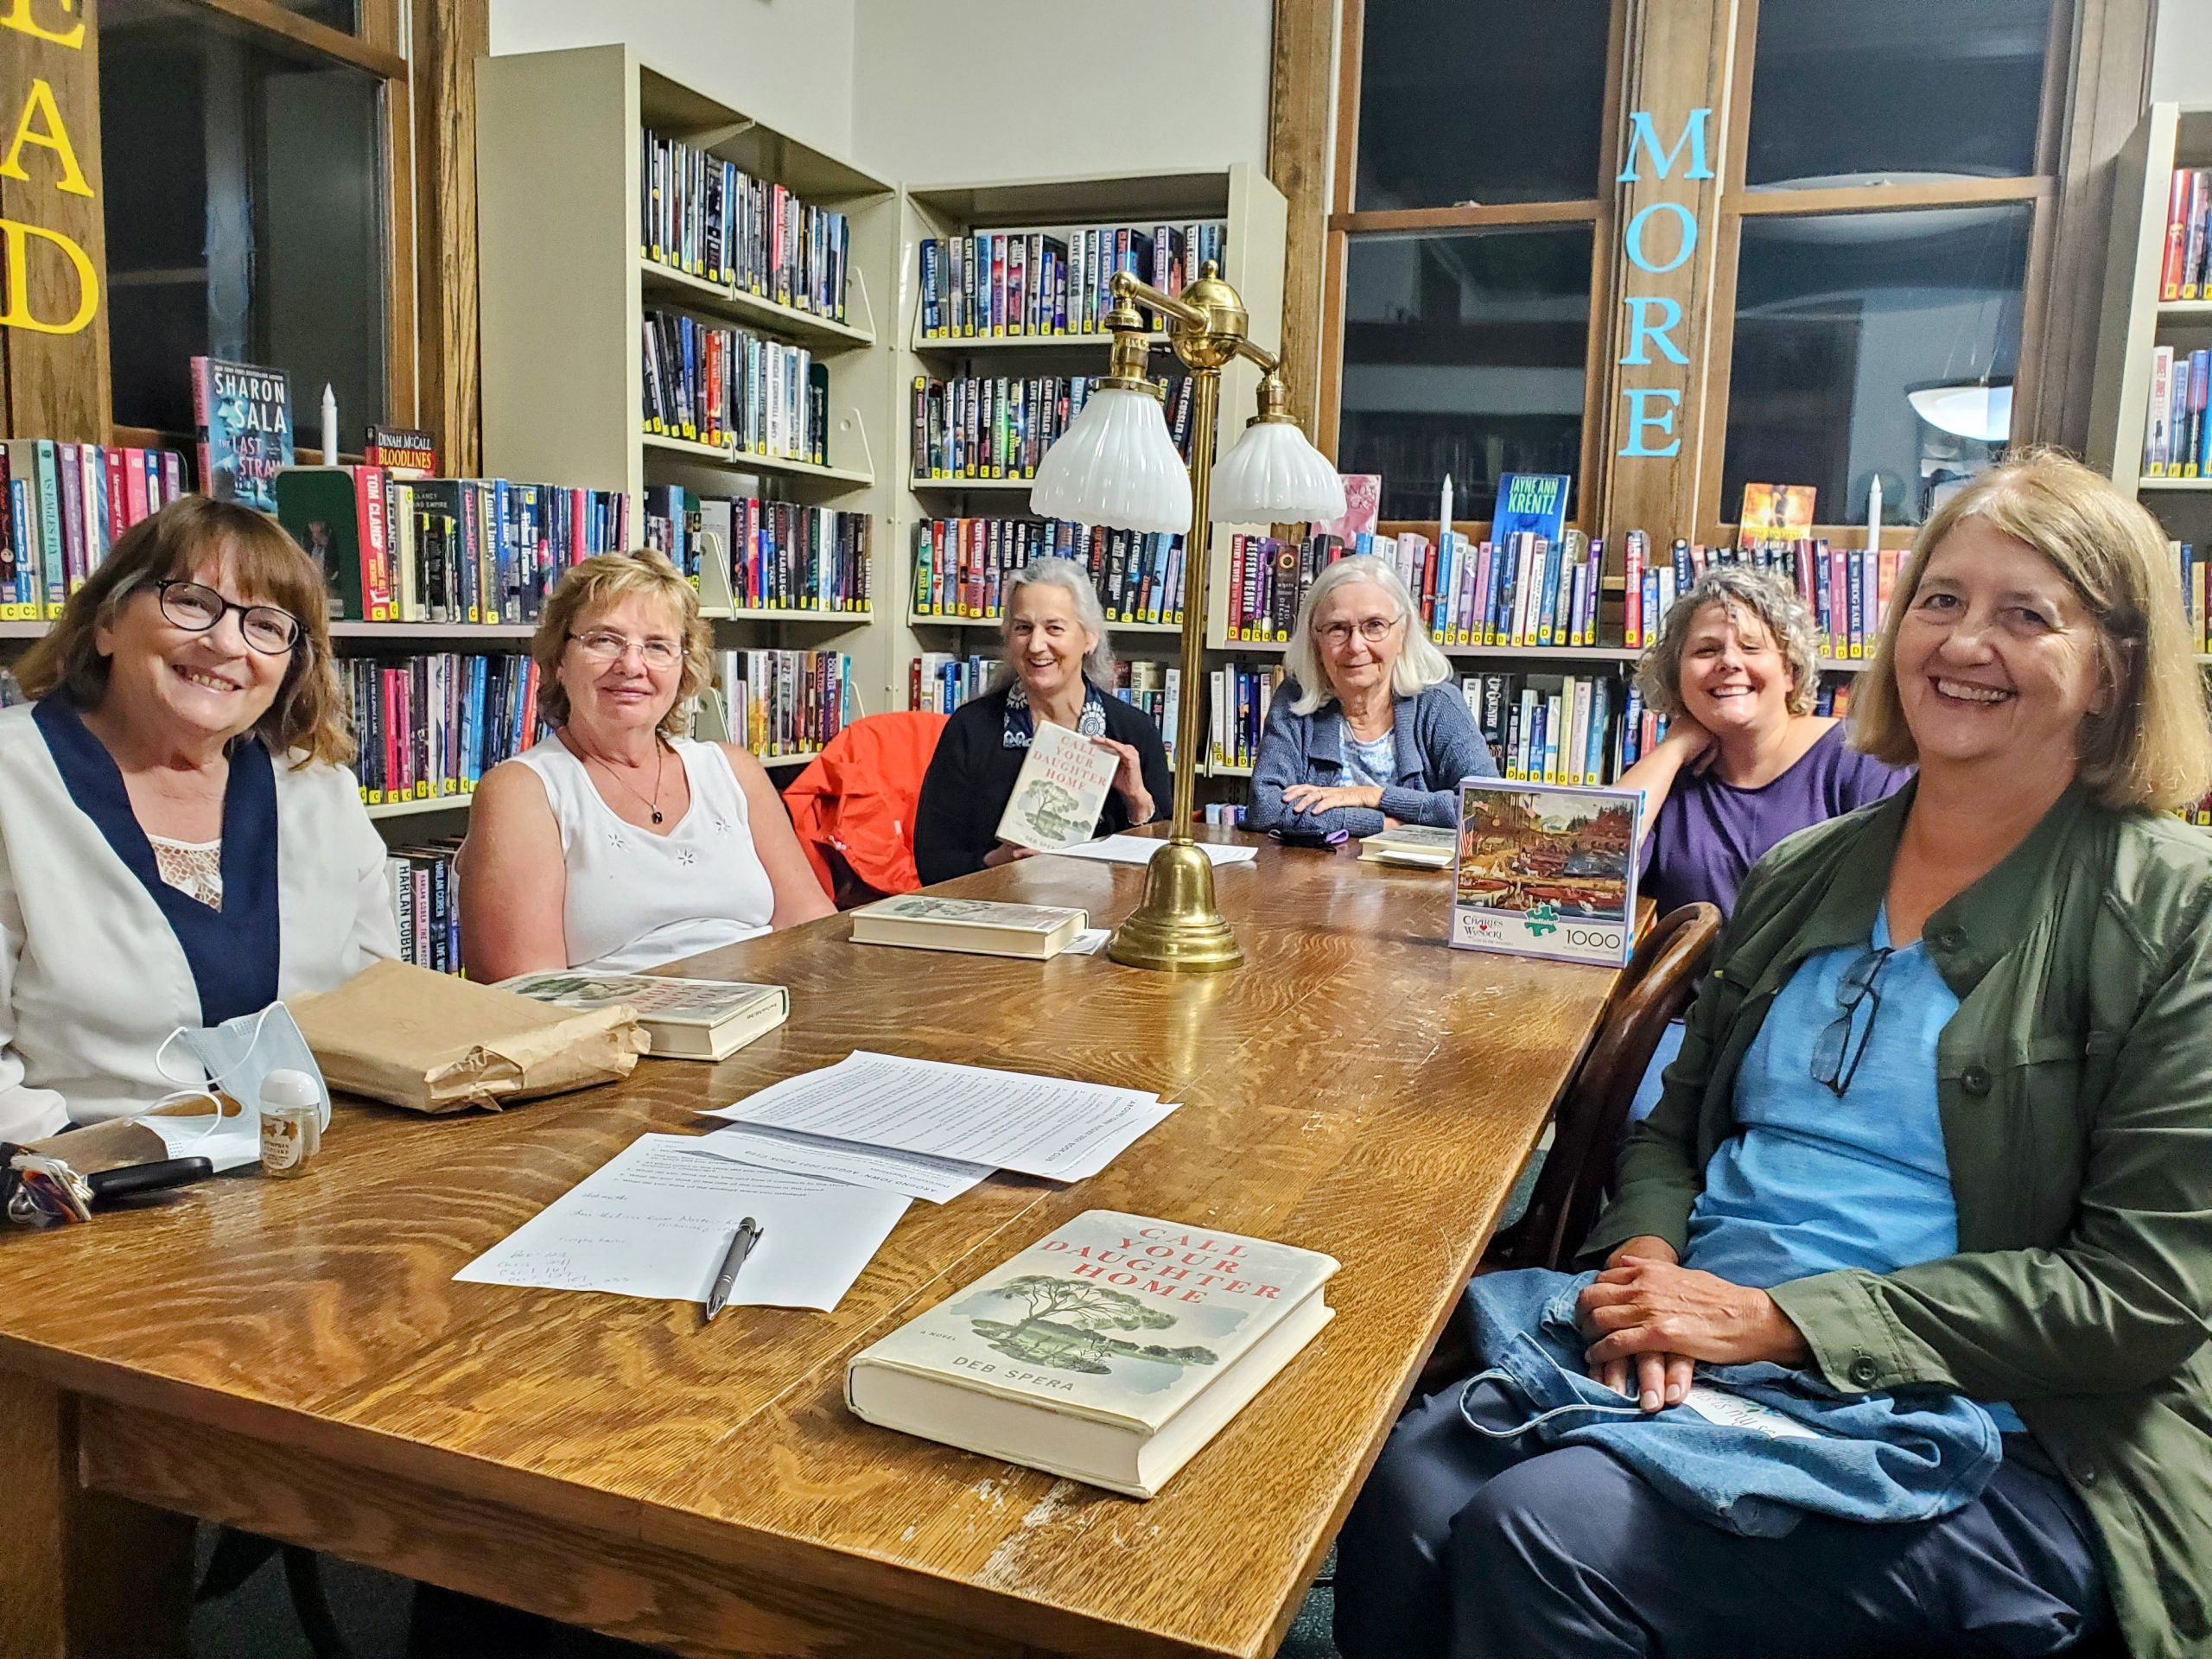 The 'Around Town' Book Club met at the library in August